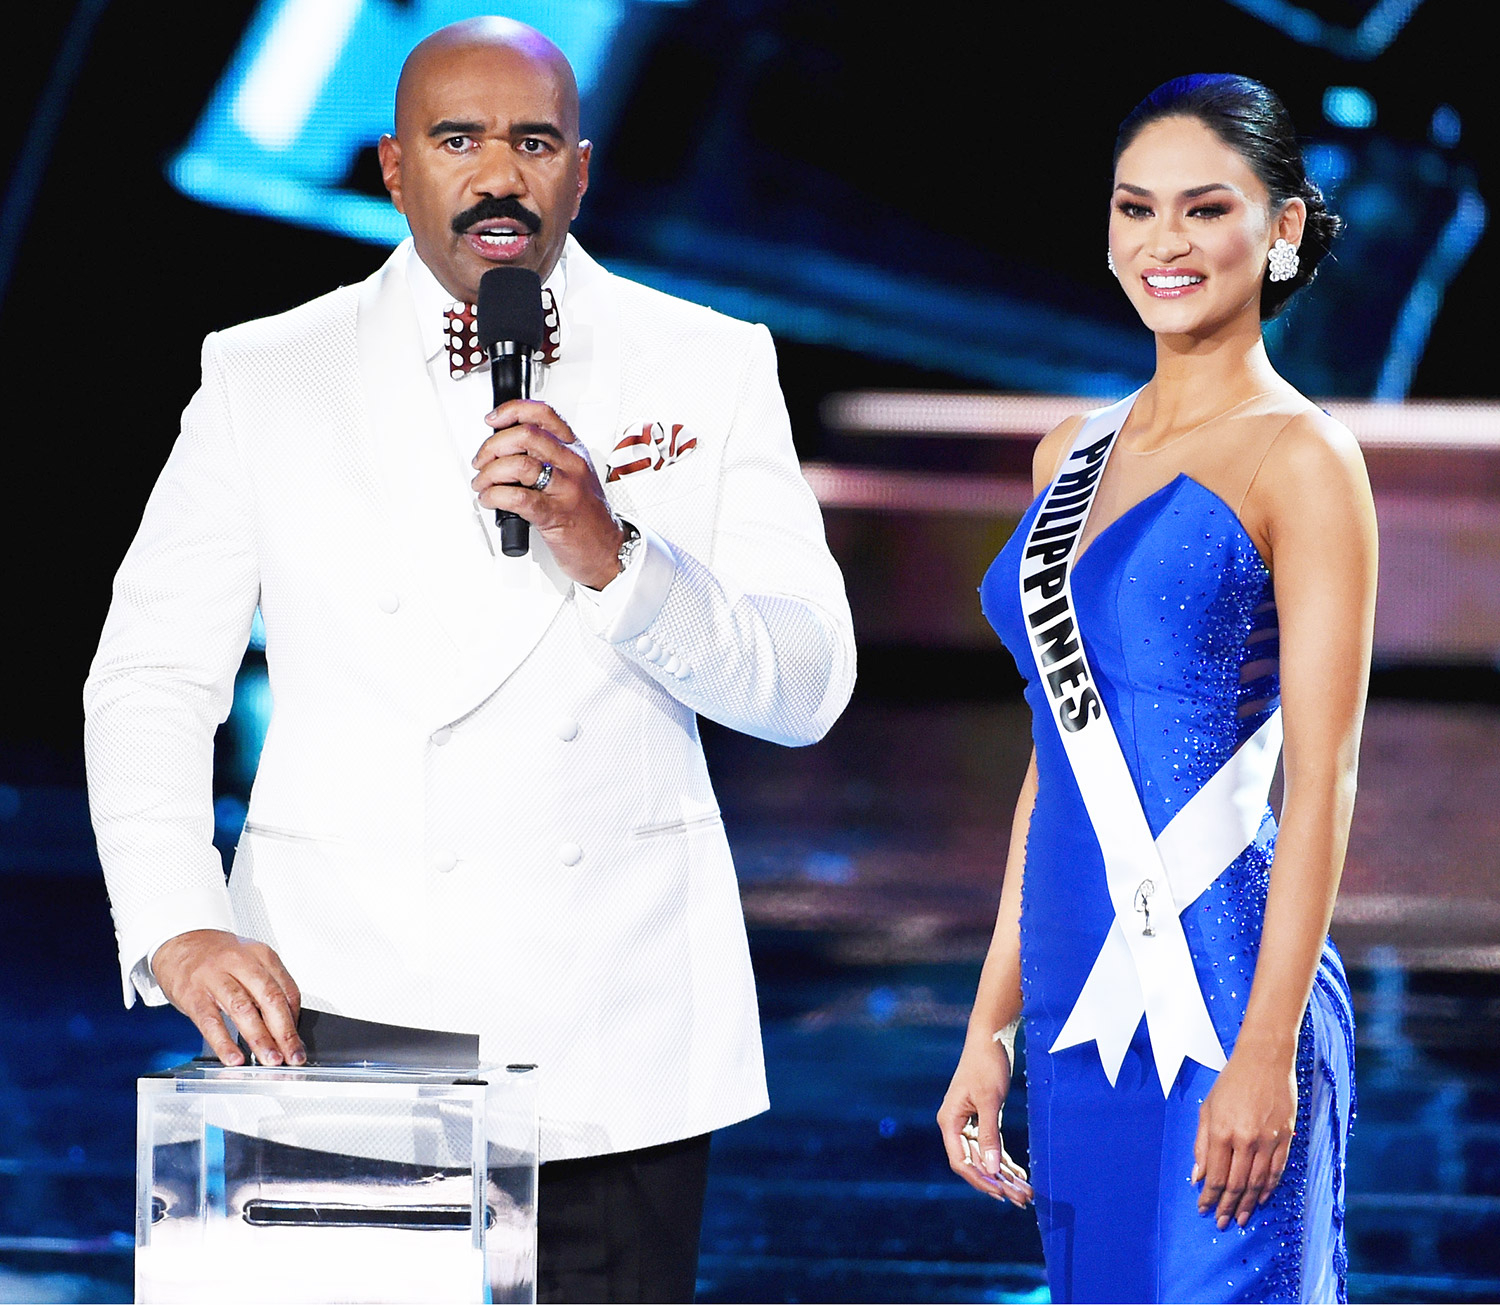 Steve Harvey and Miss Philippines